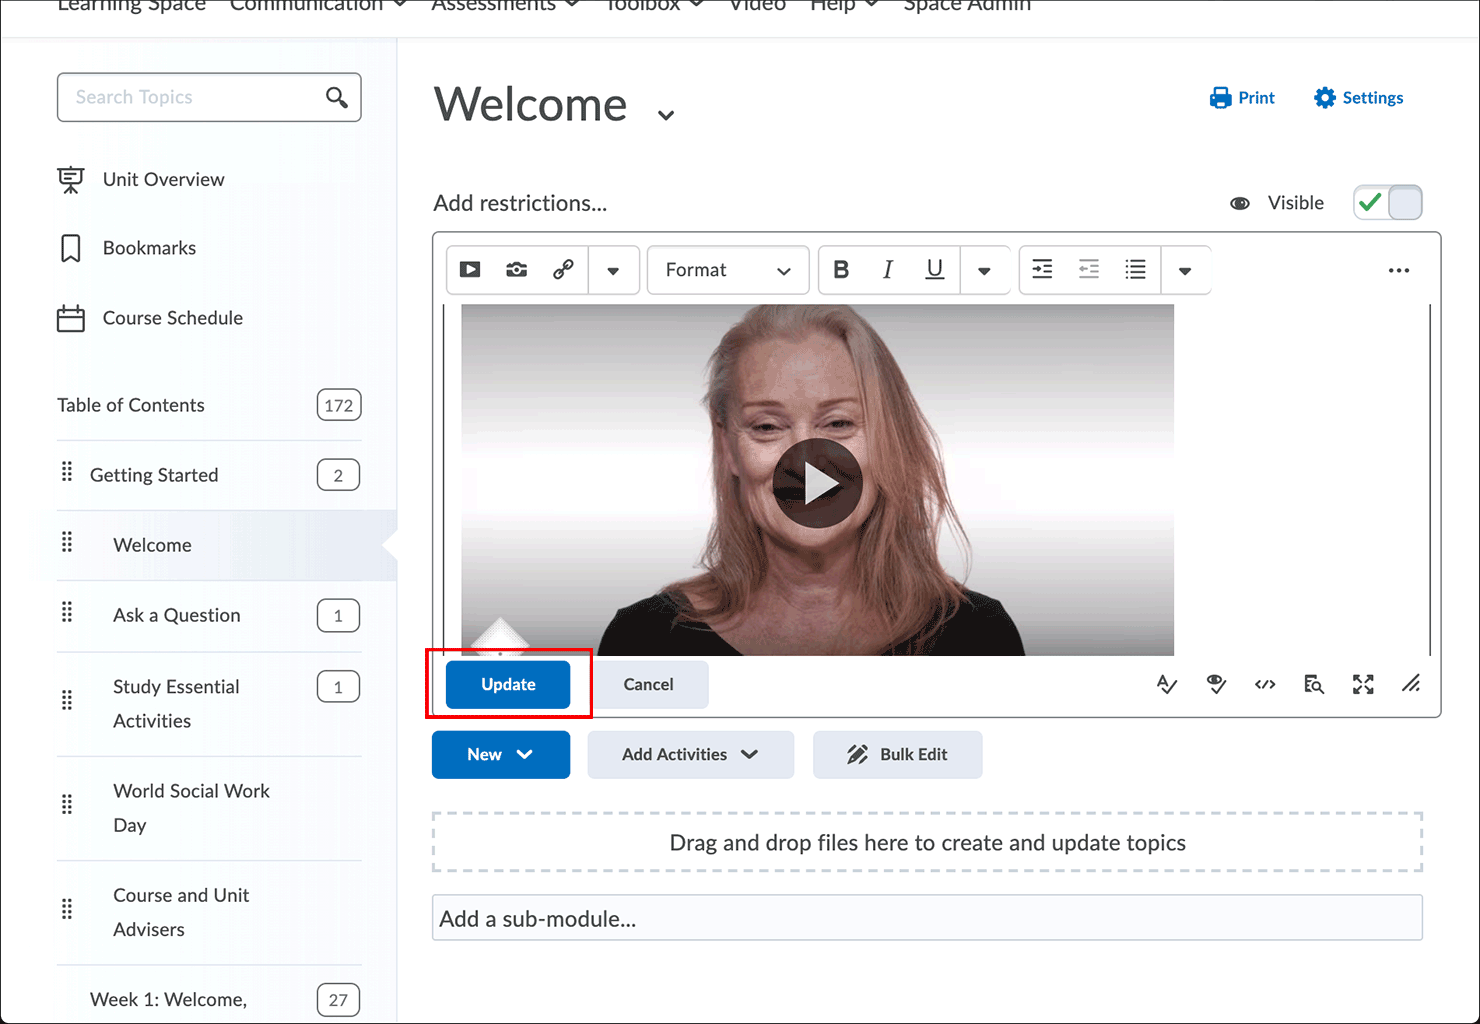 Click Update button to preview the video on the Welcome page